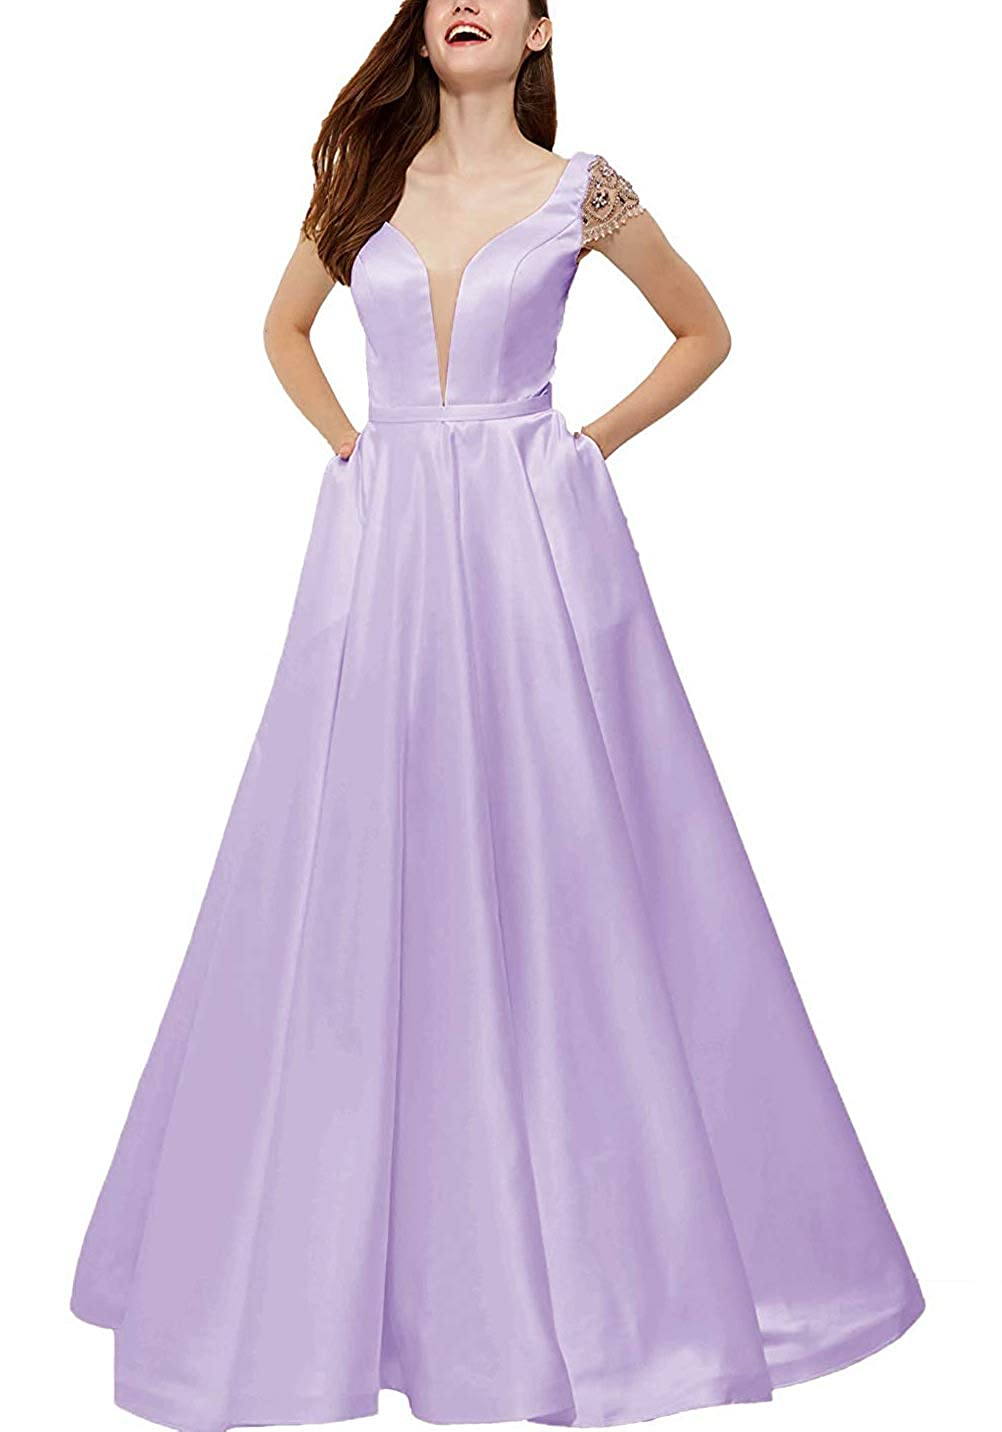 purplec V Neck Beaded Prom Gown Long Satin Backless Aline Formal Evening Dress with Pockets